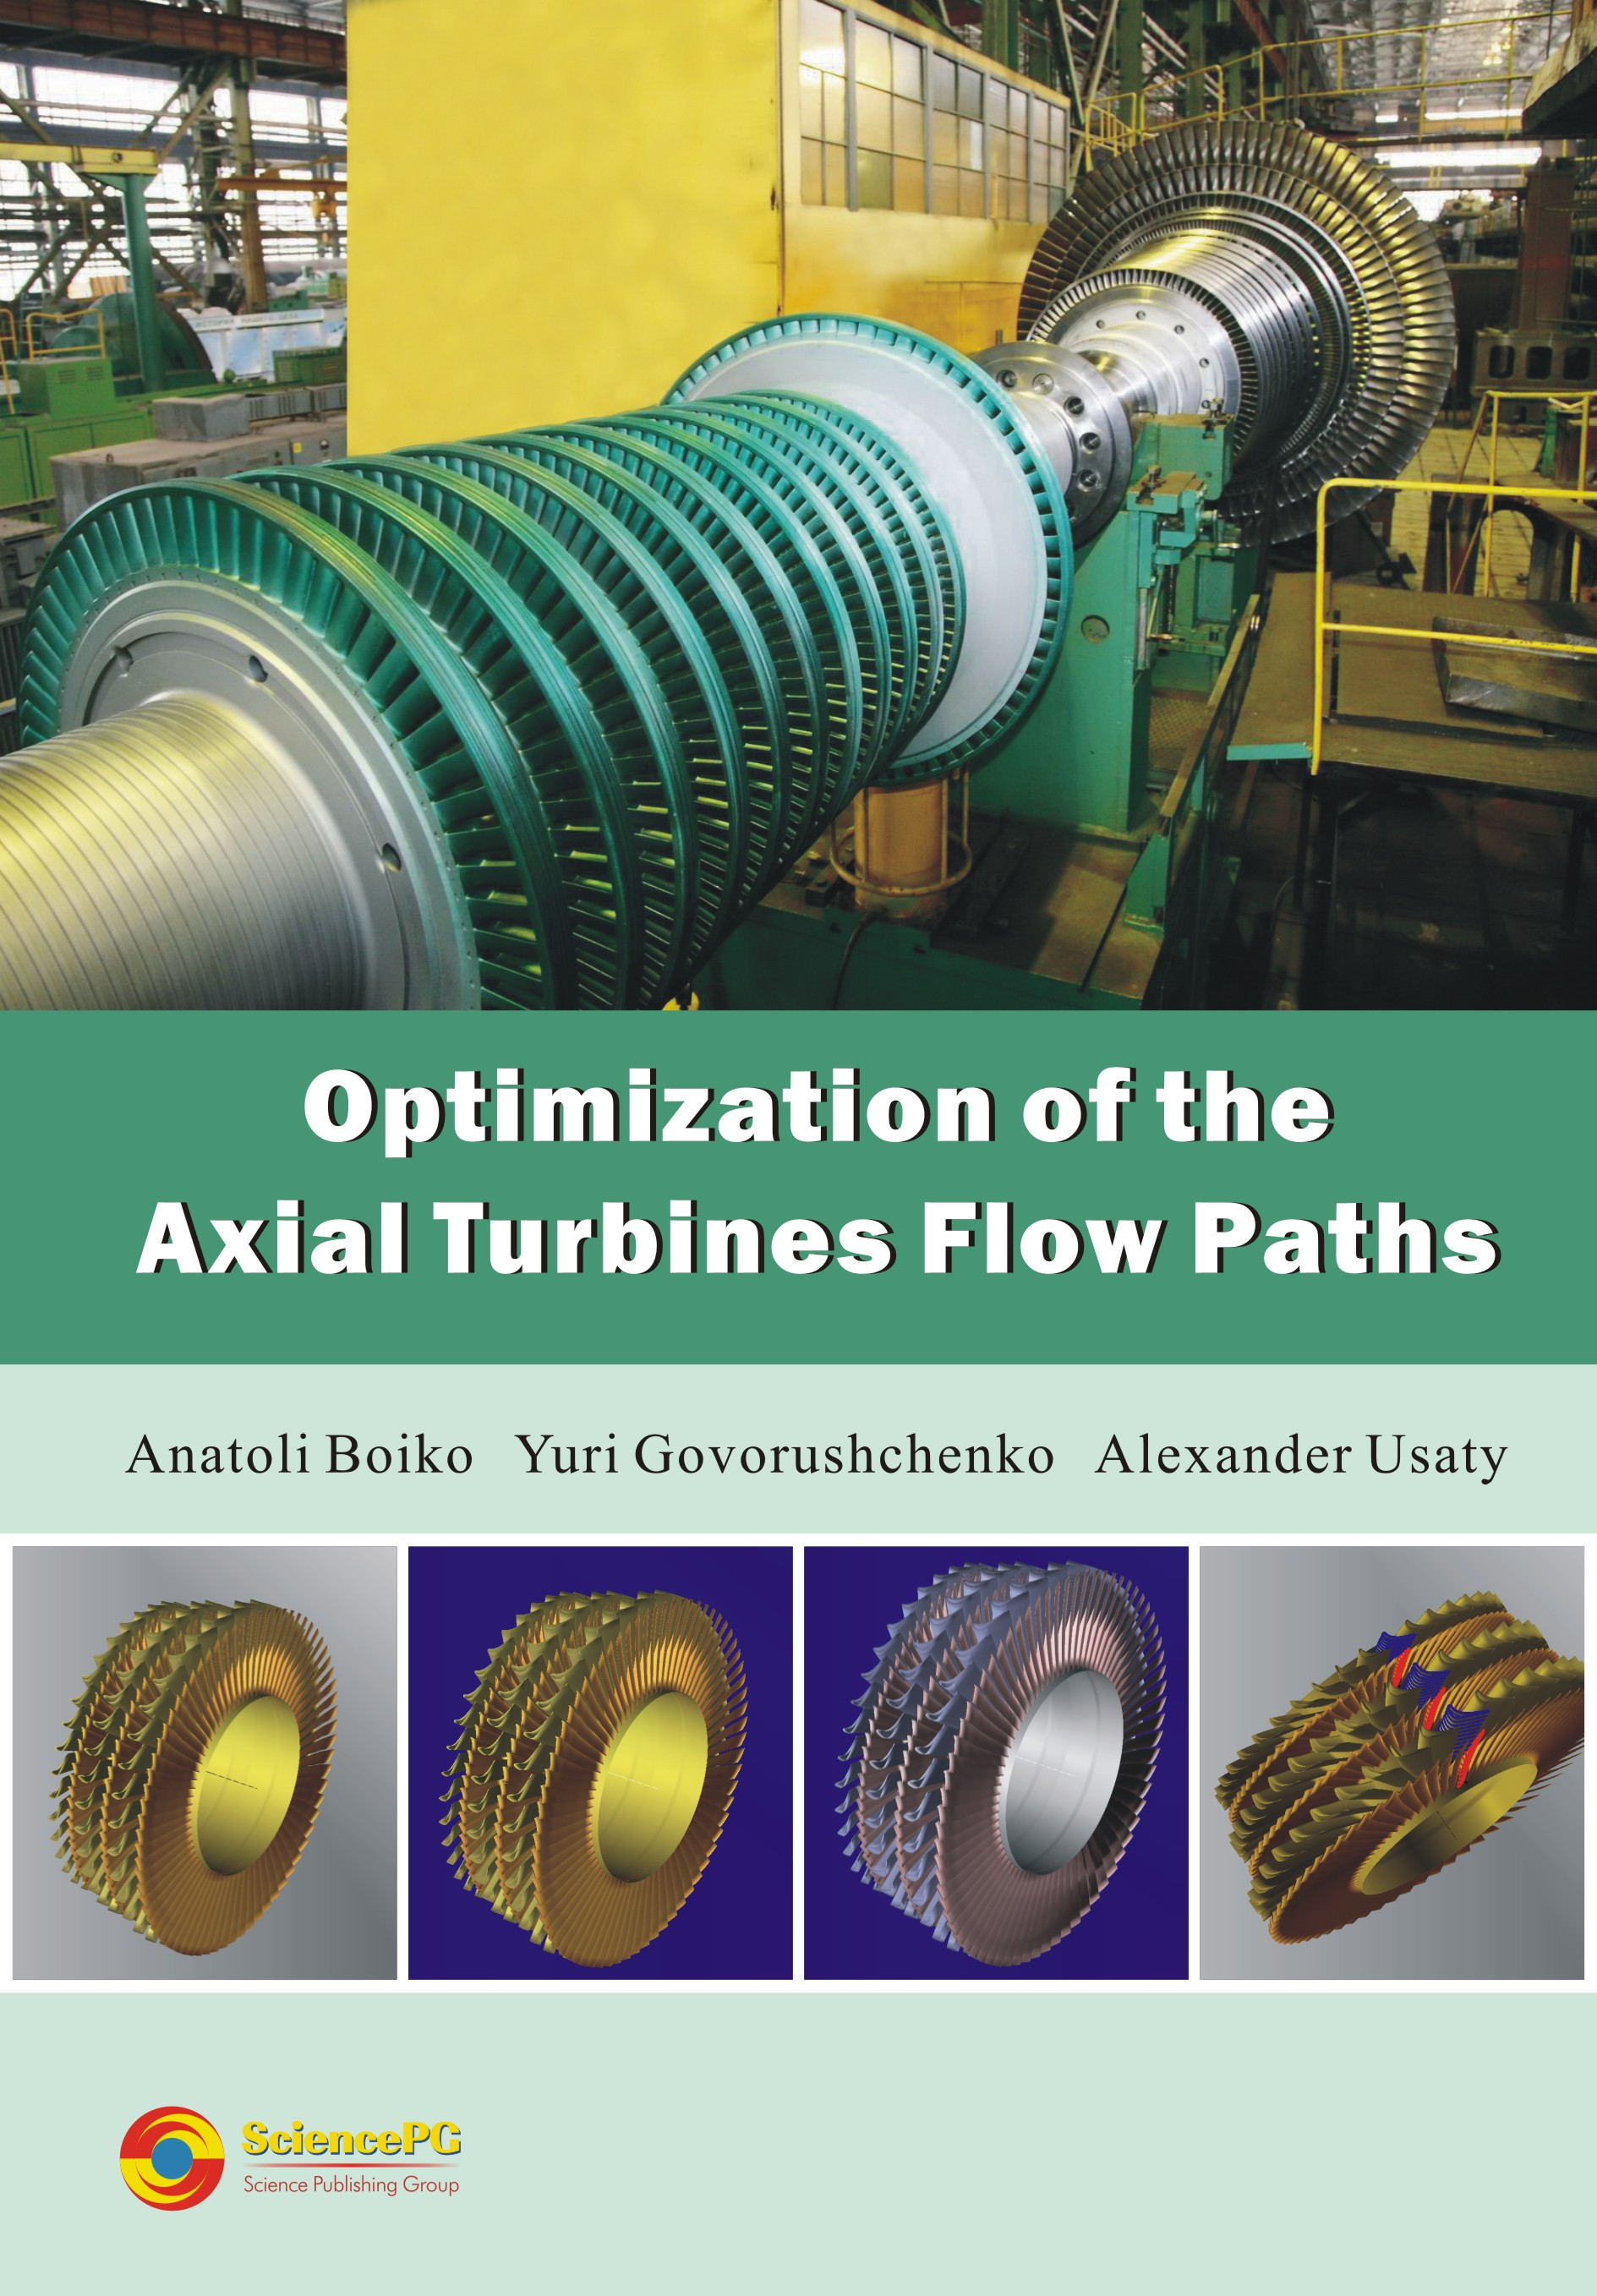 Optimization of the Axial Turbines Flow Paths Book Science